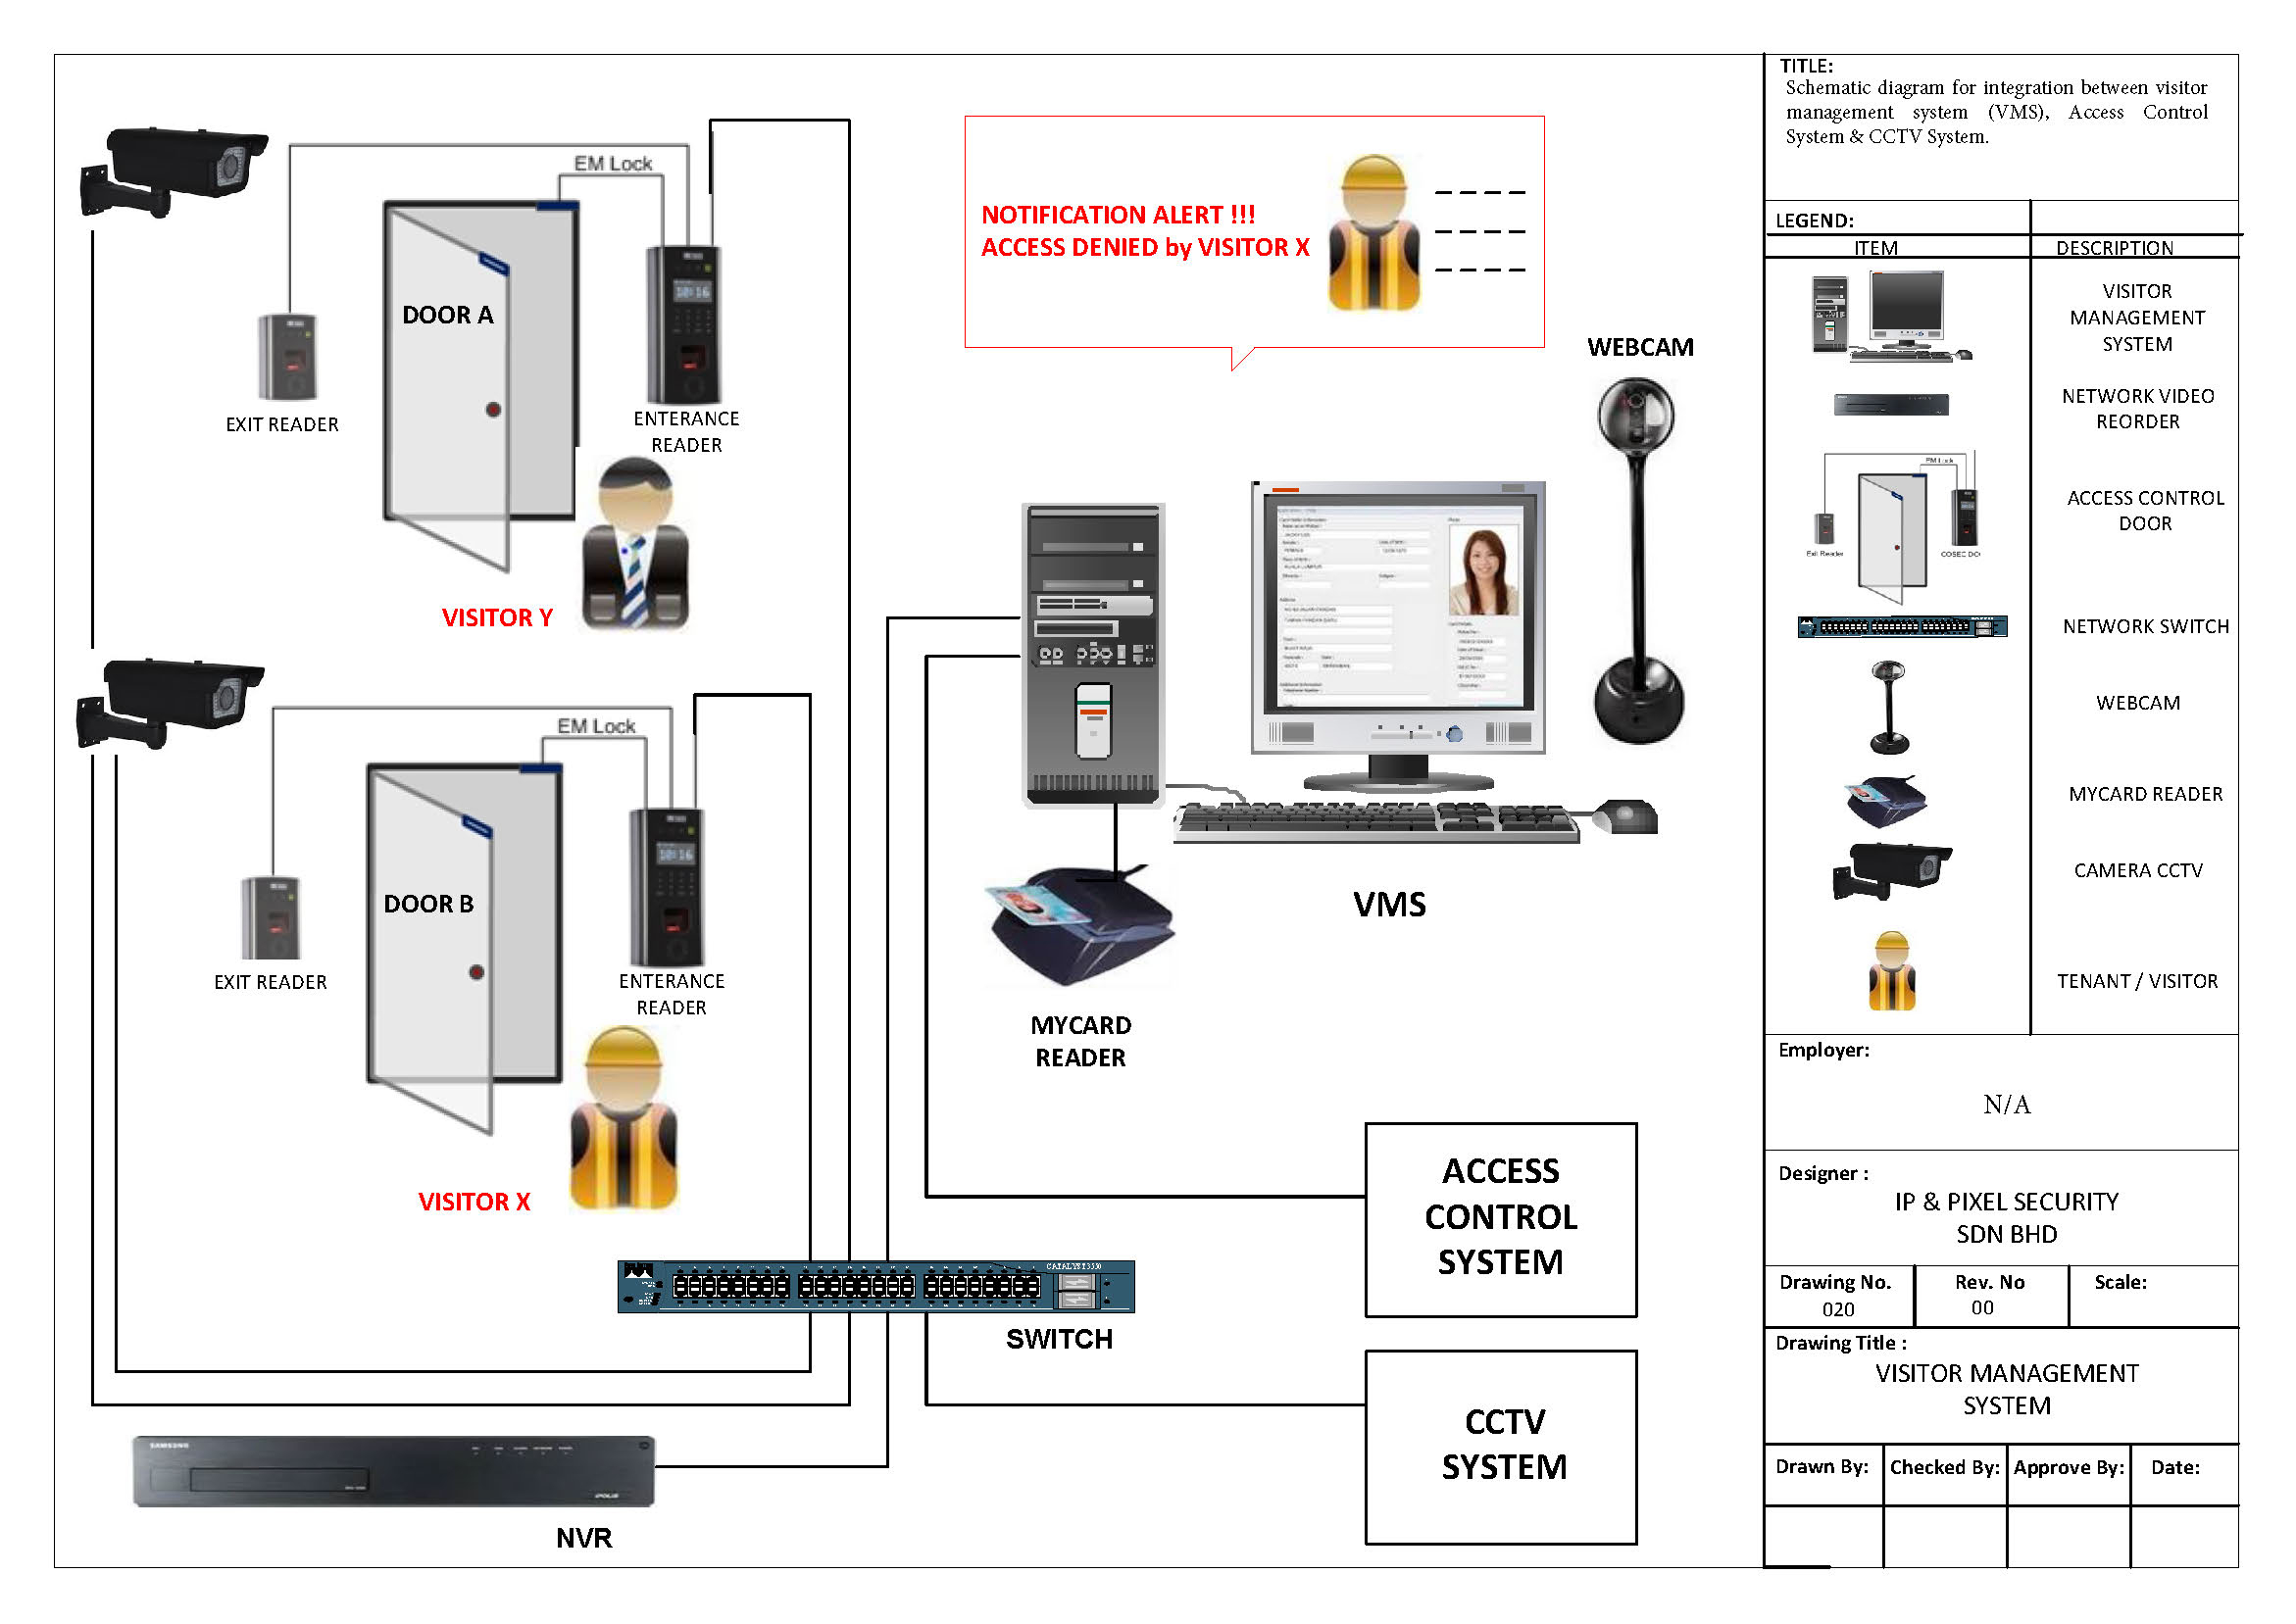 ptz controller wiring diagram Download-Home Security System Wiring Diagram Luxury Charming Lorex Security Camera Wiring Diagram Contemporary 12-e